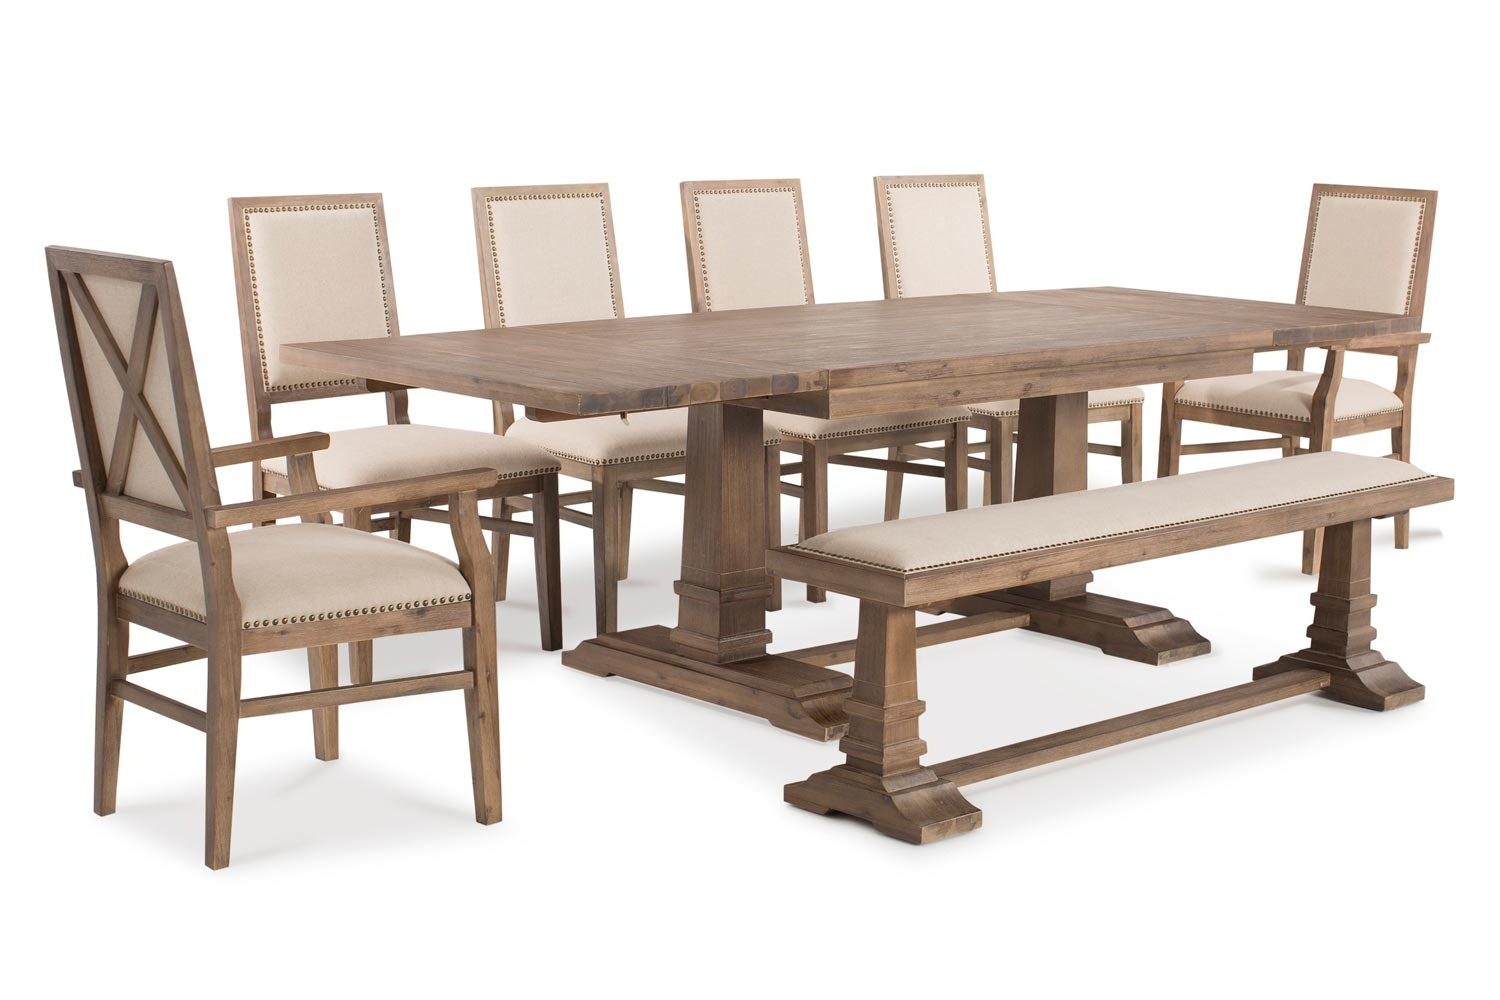 Larissa Extending Dining Set With Bench, 4 Dining Chairs And 2 Carver Chairs|  8 ...